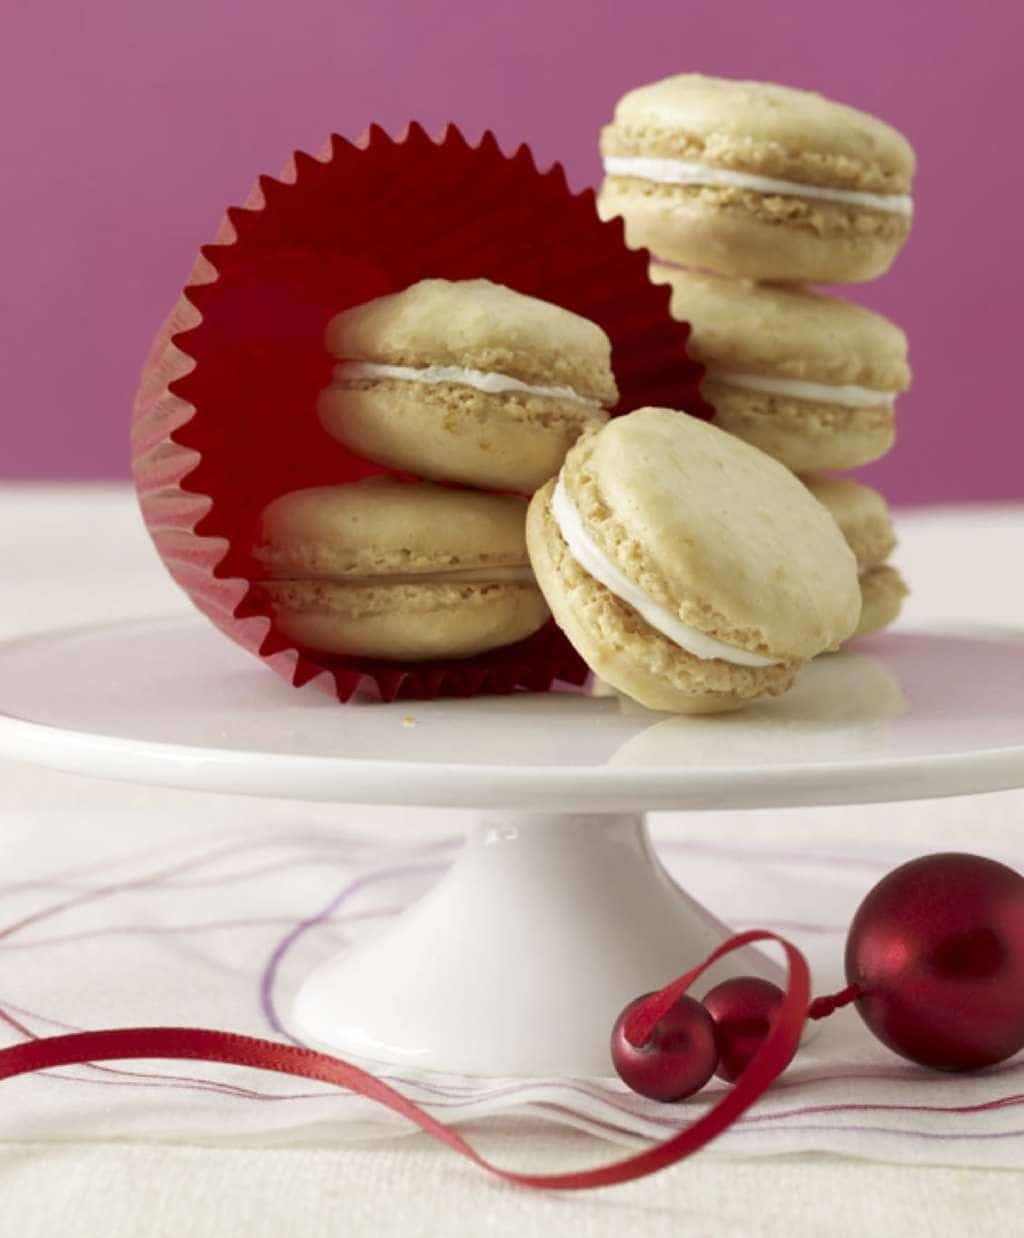 Clementine Almond Cookies on cake plate w red ornament